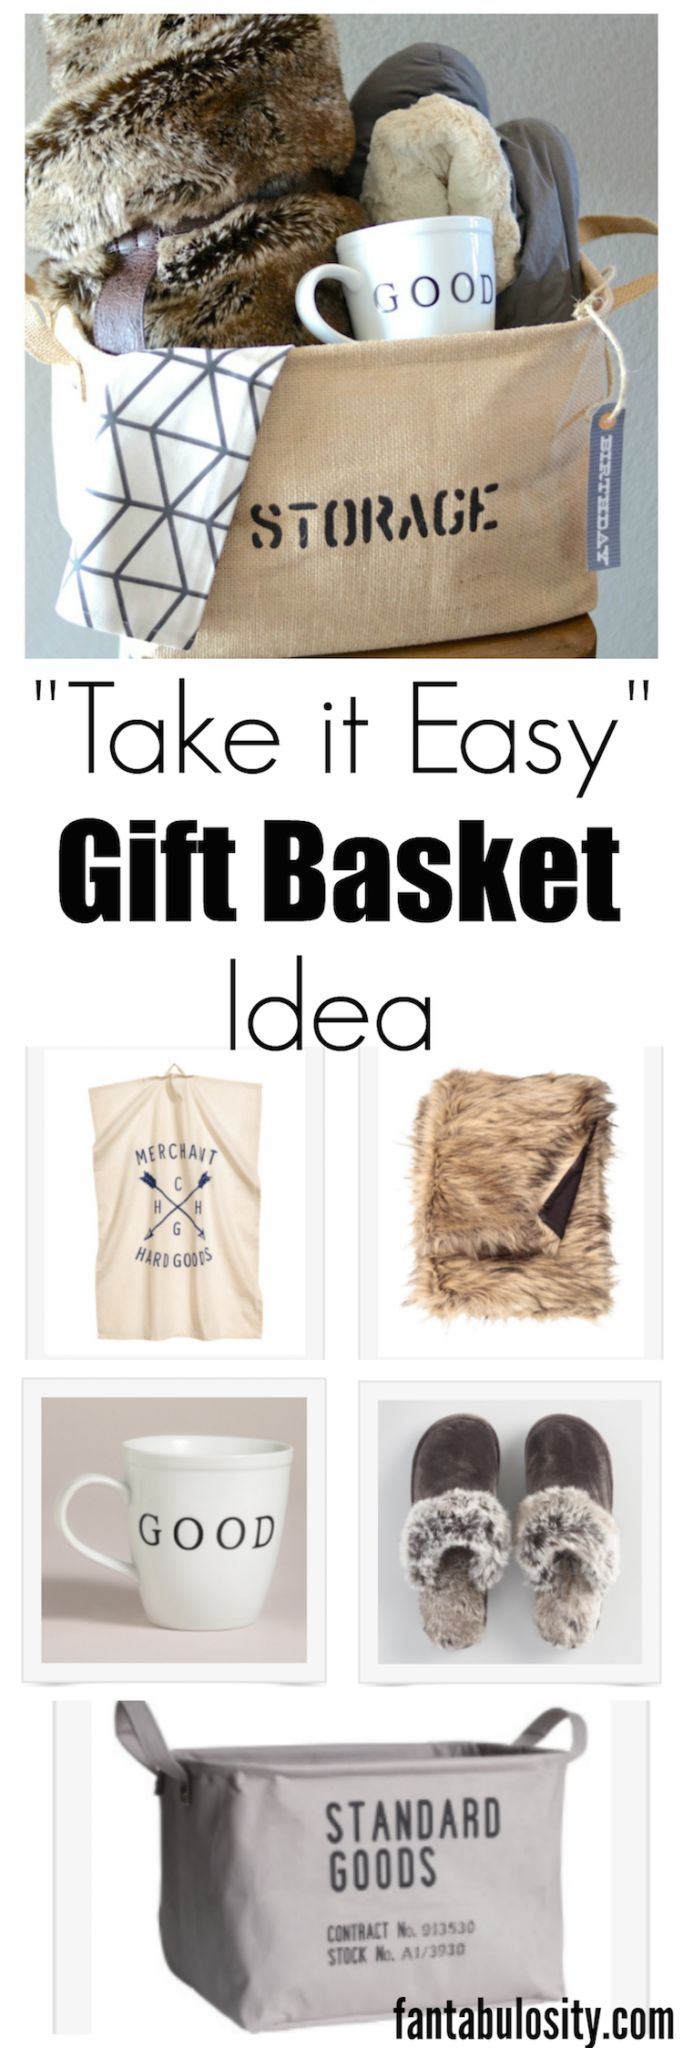 Take it Easy Relaxation Gift Basket Idea for Men or Women  This simple gift idea is perfect for any man or woman for ANY occasion! Who wouldn't love a basket with an excuse to relax! fantabulosity